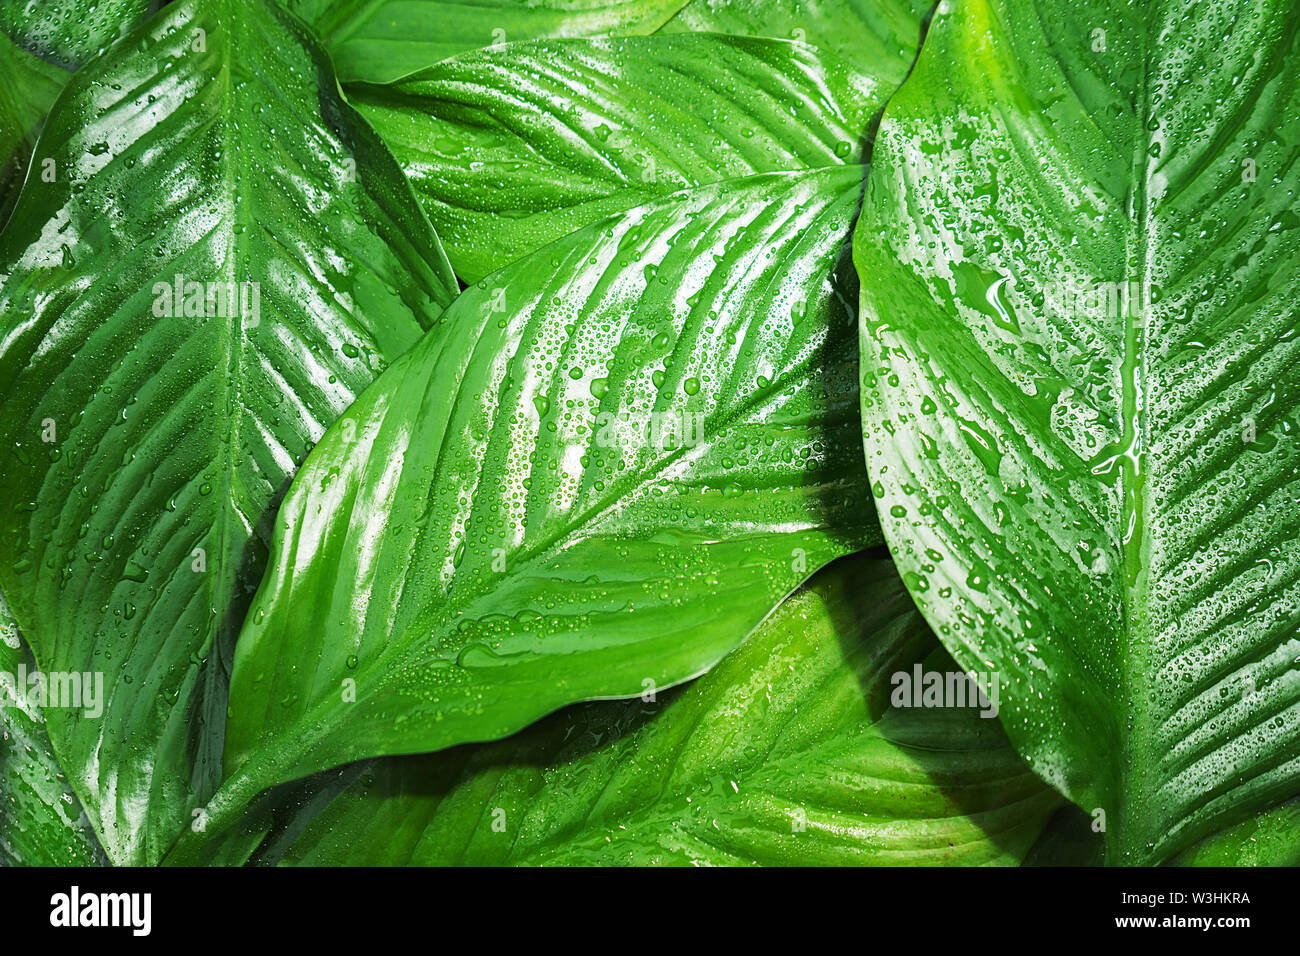 Green fresh leaves with raindrop, beautiful natural background. Close up.Top view, flat lay. - Stock Image